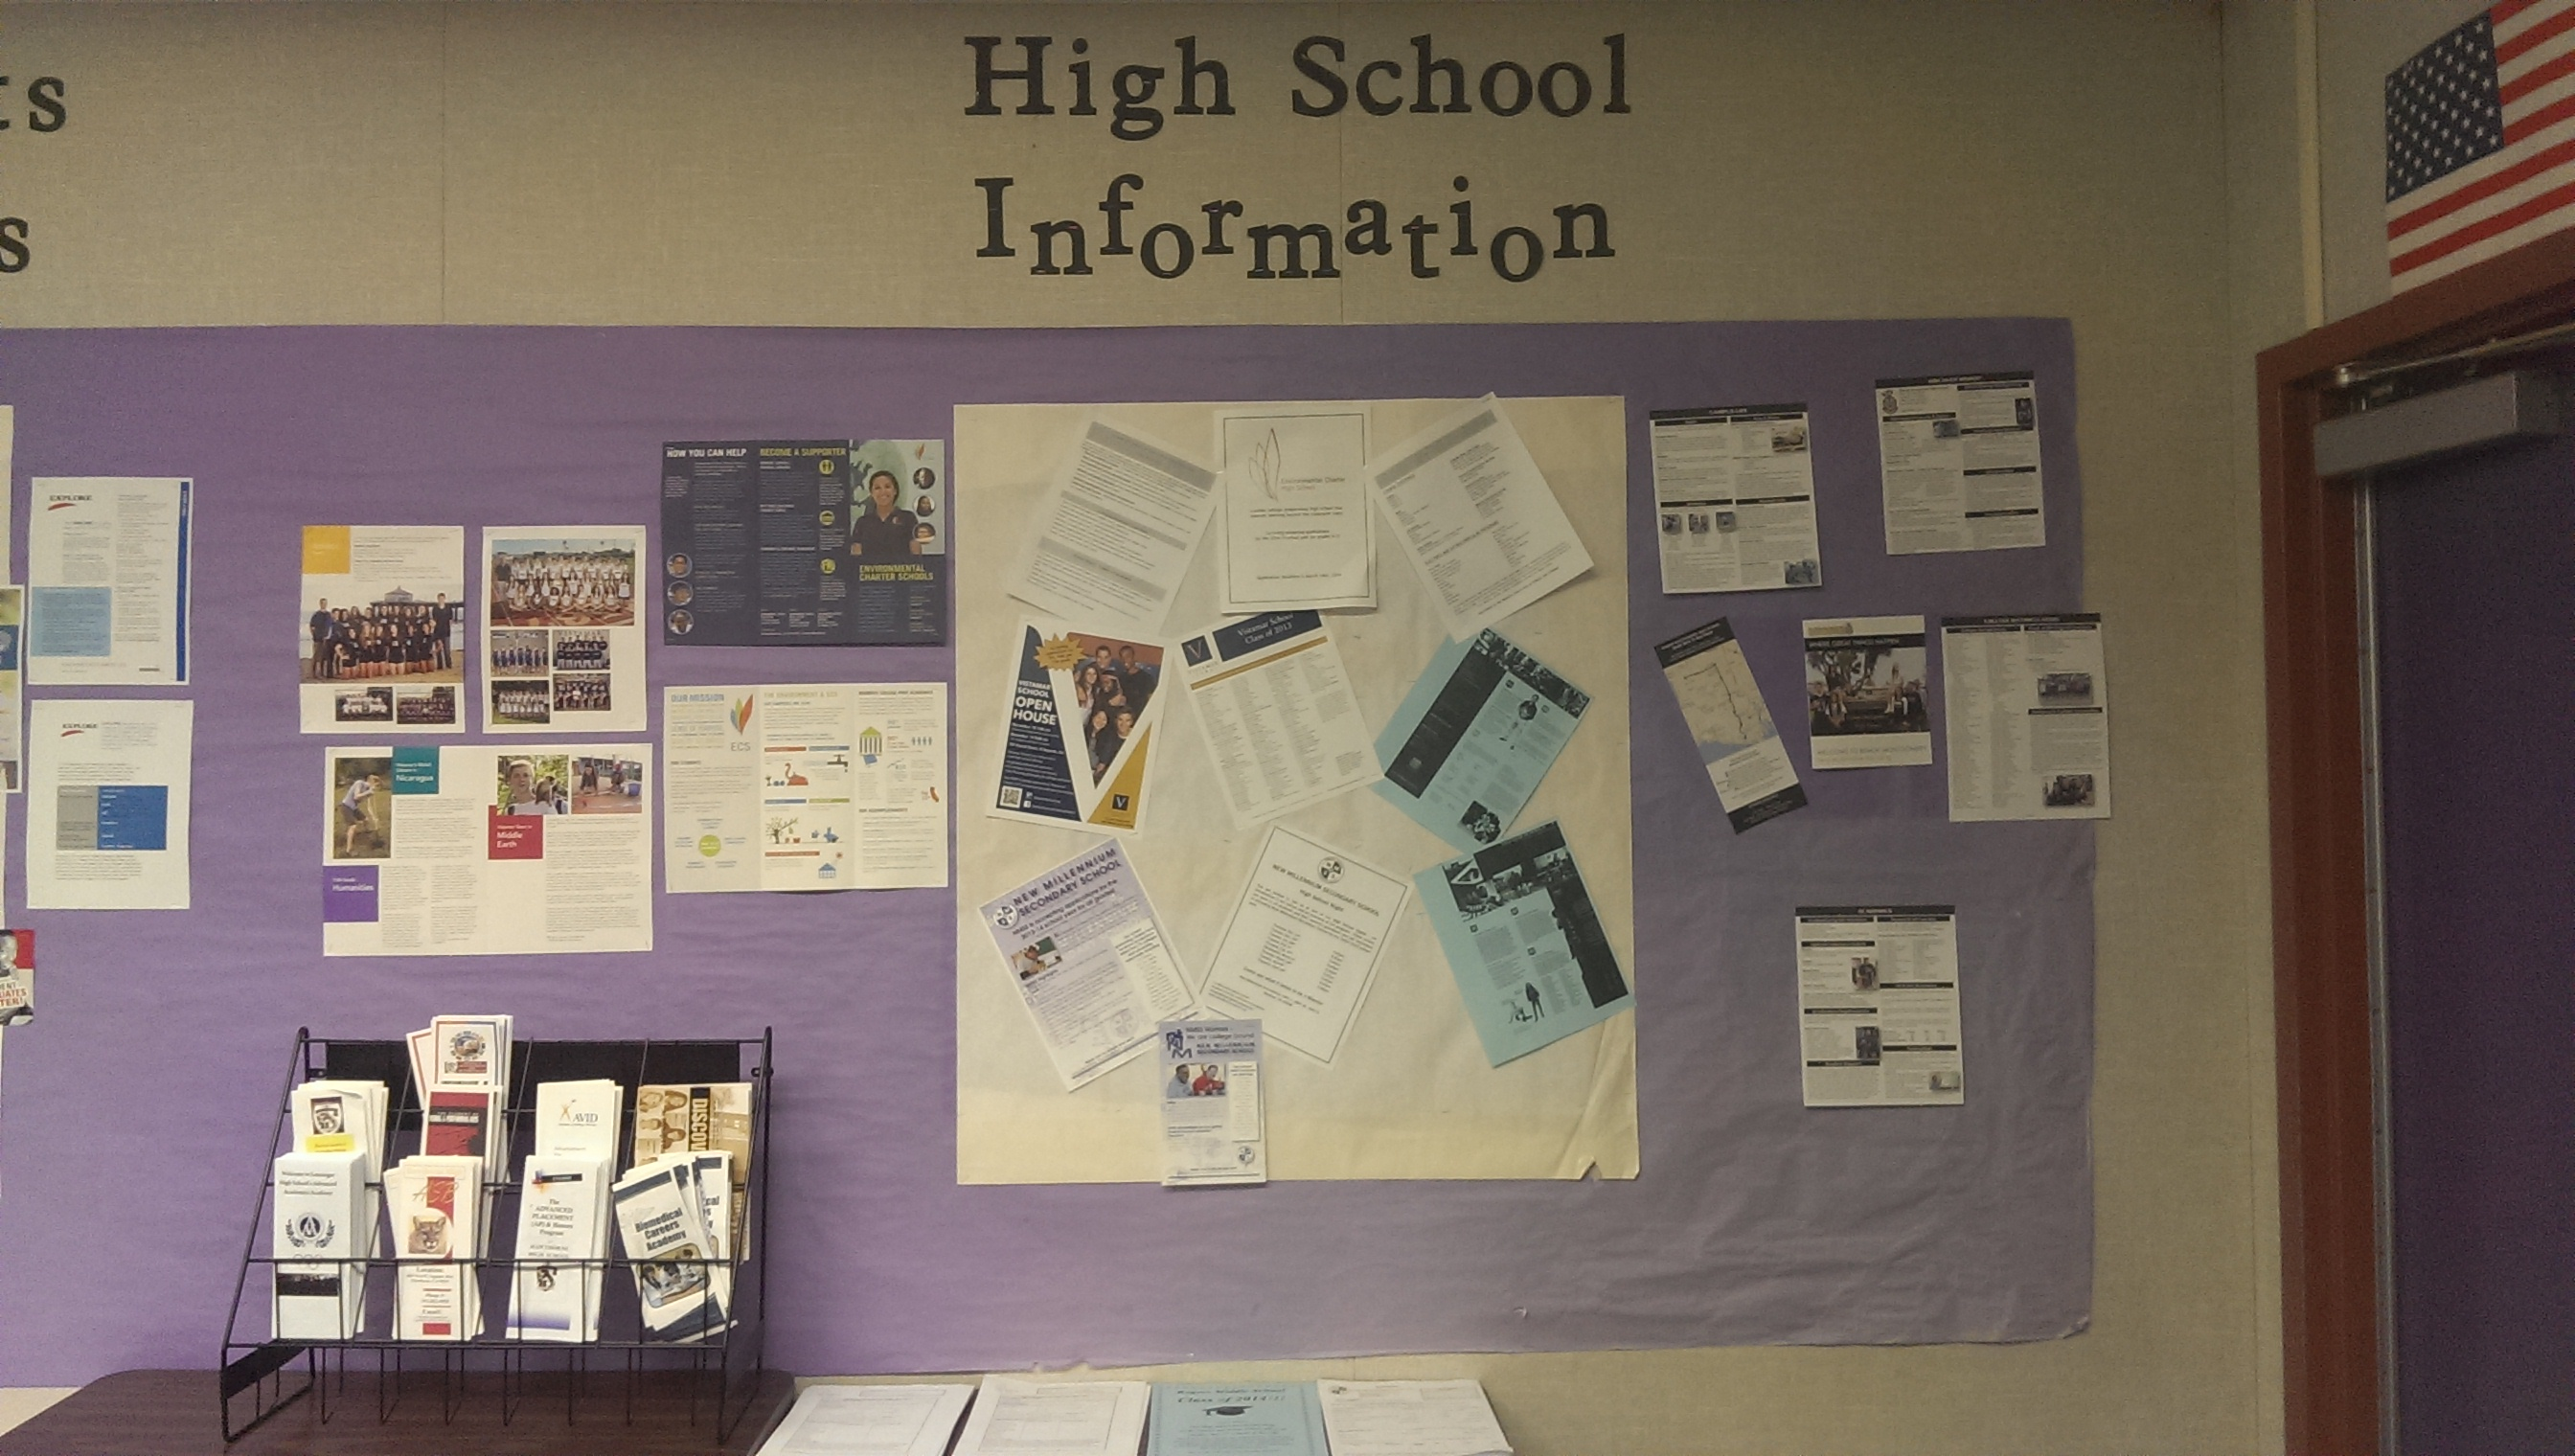 High School Bulletin Board